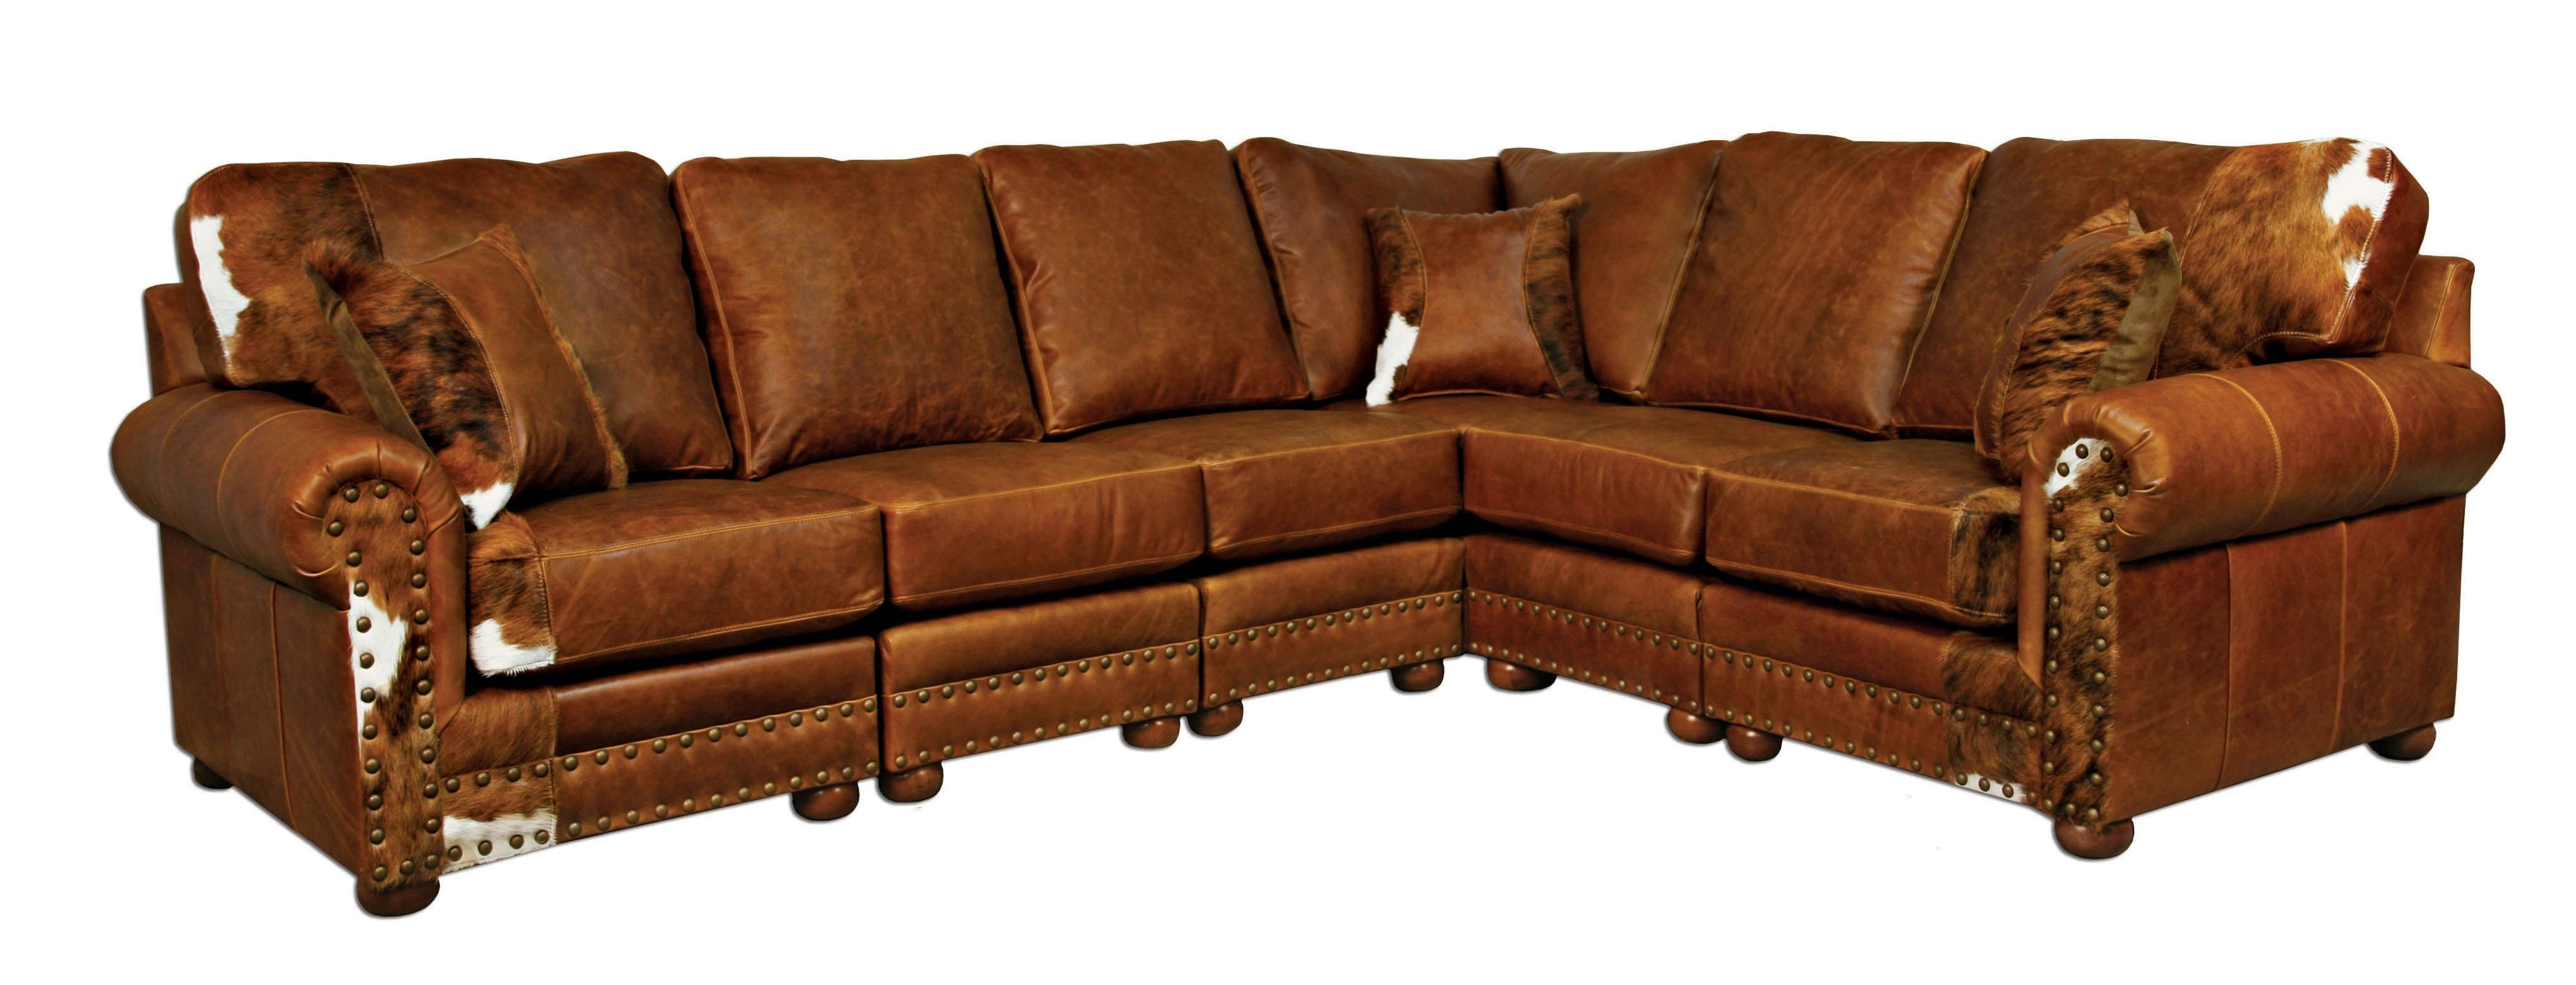 Outlaw Sectional Sofa In Weston Pecan Hair On Hide